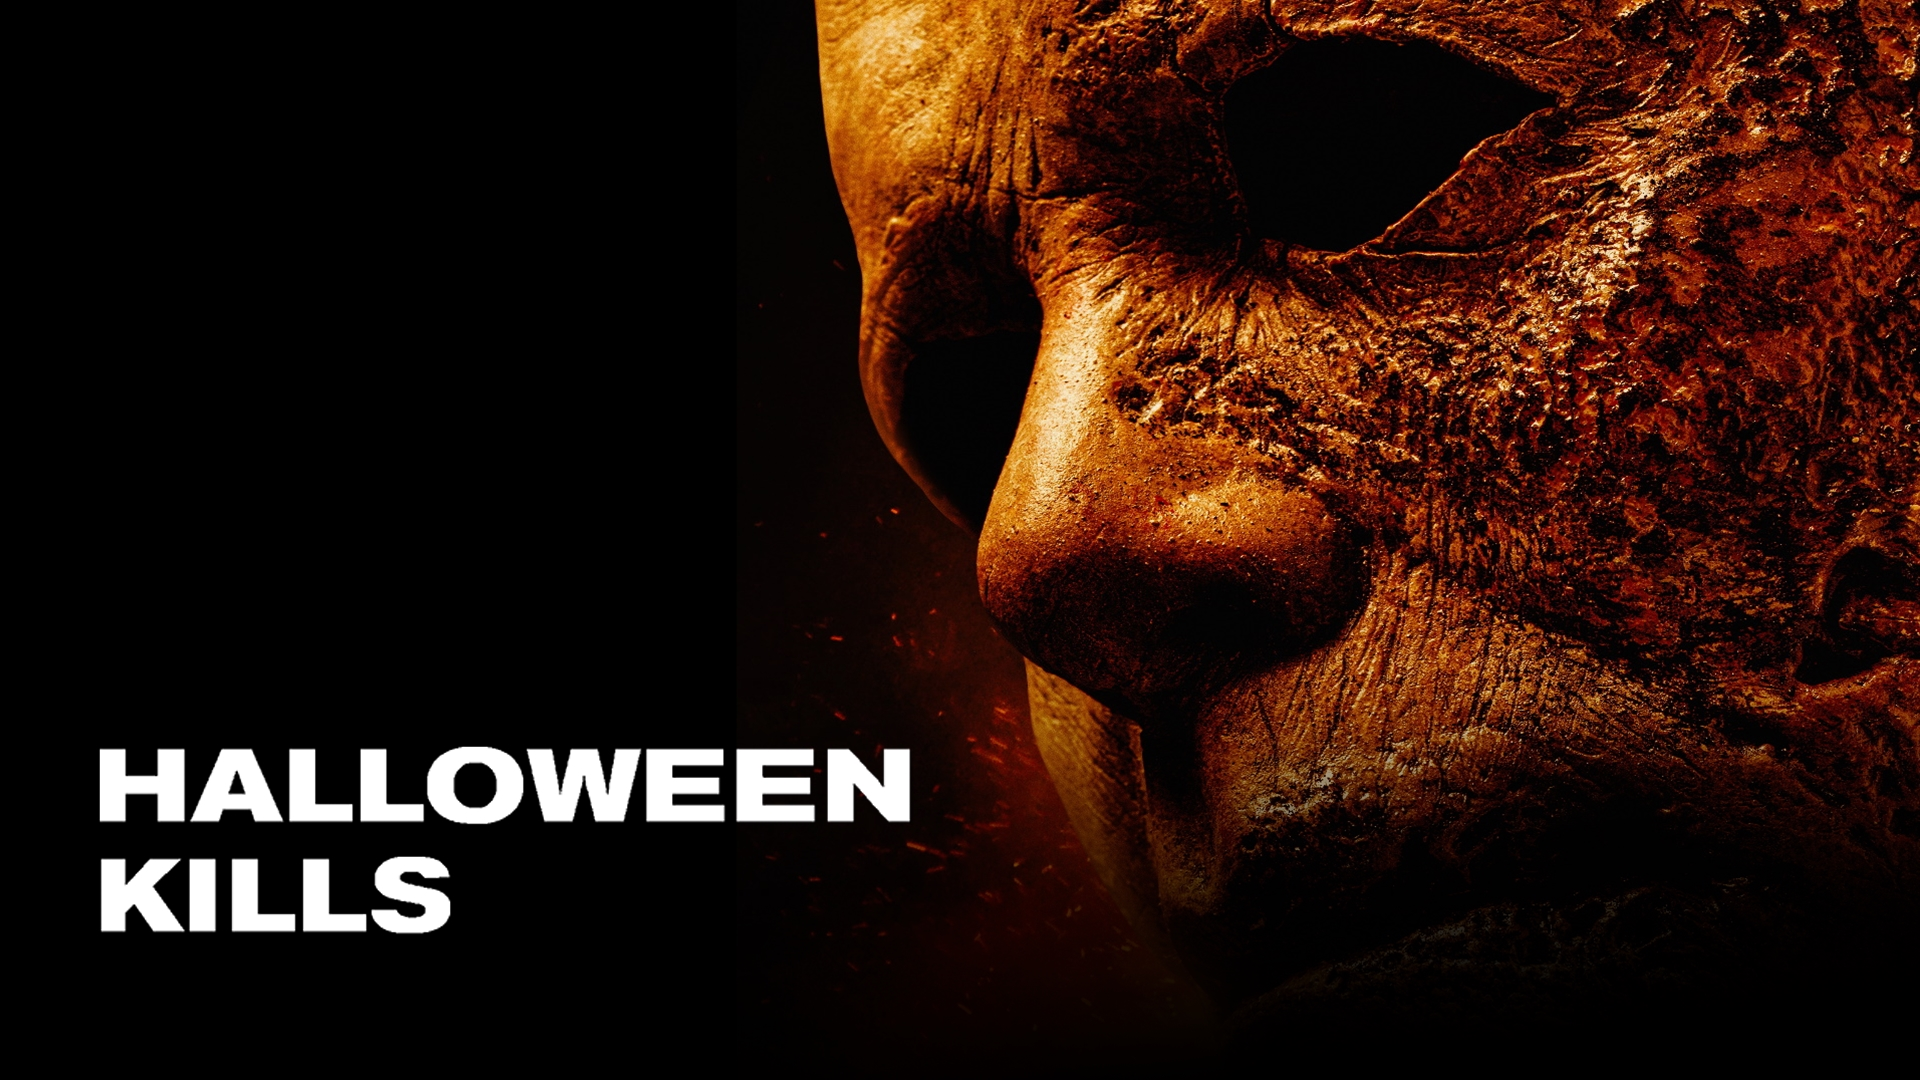 Halloweens Kills is disappointing